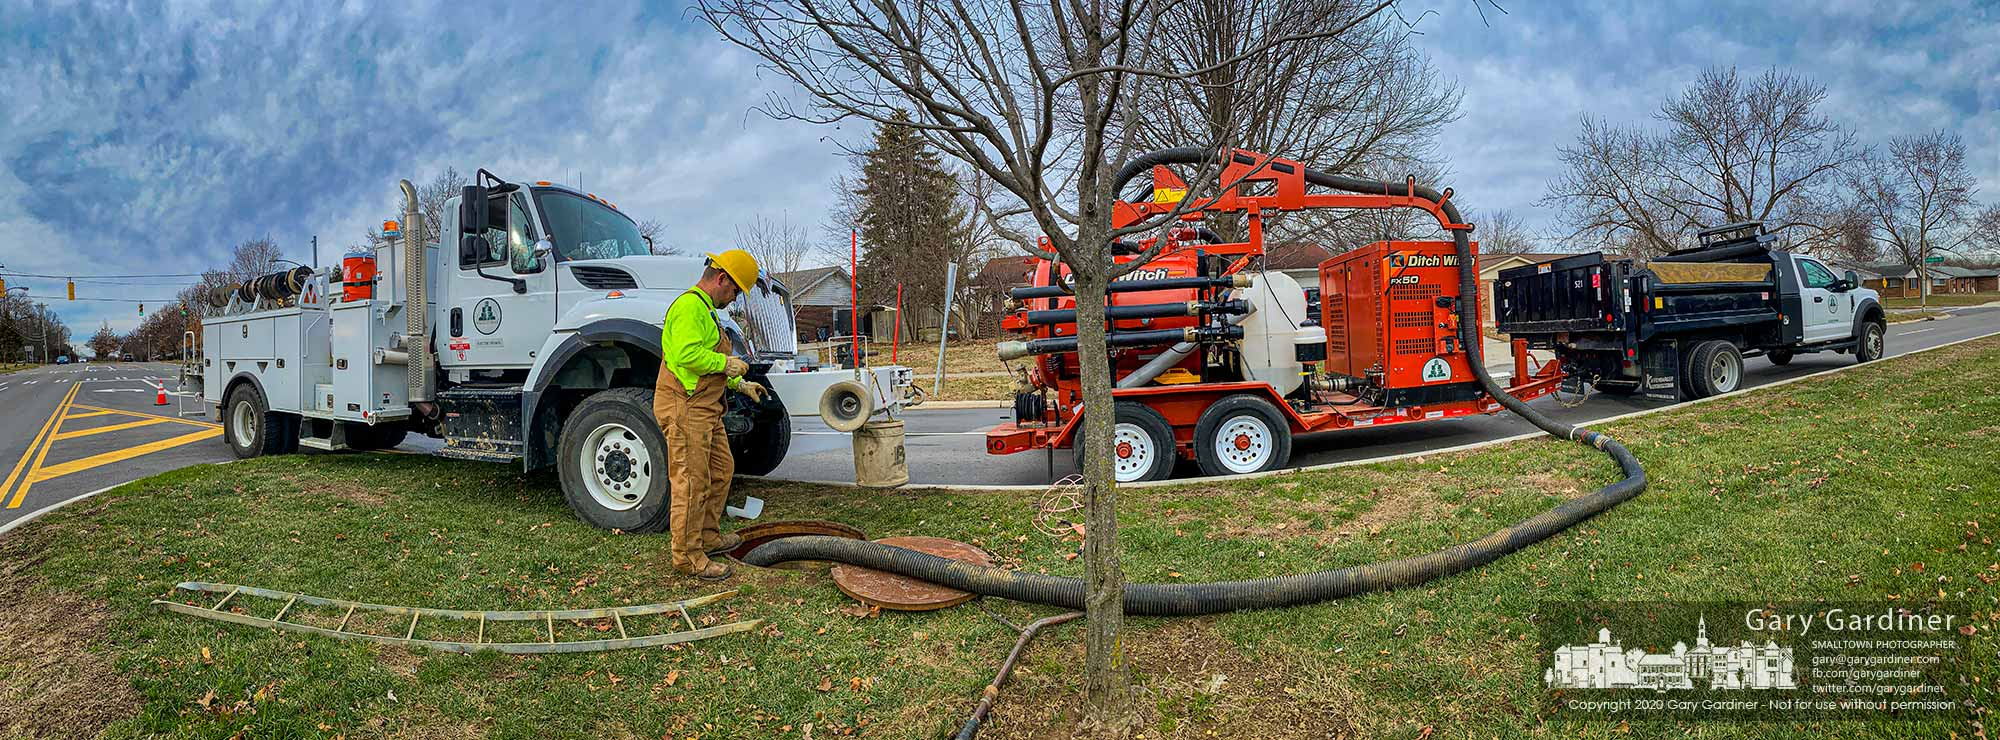 A Westerville city electric crew pulls a fiber sleeve for data cables through conduit beneath Huber Village Blvd. and Eastwind Dr. as the city expands its data capability in the south end of the city. My Final Photo for Jan. 9, 2020.